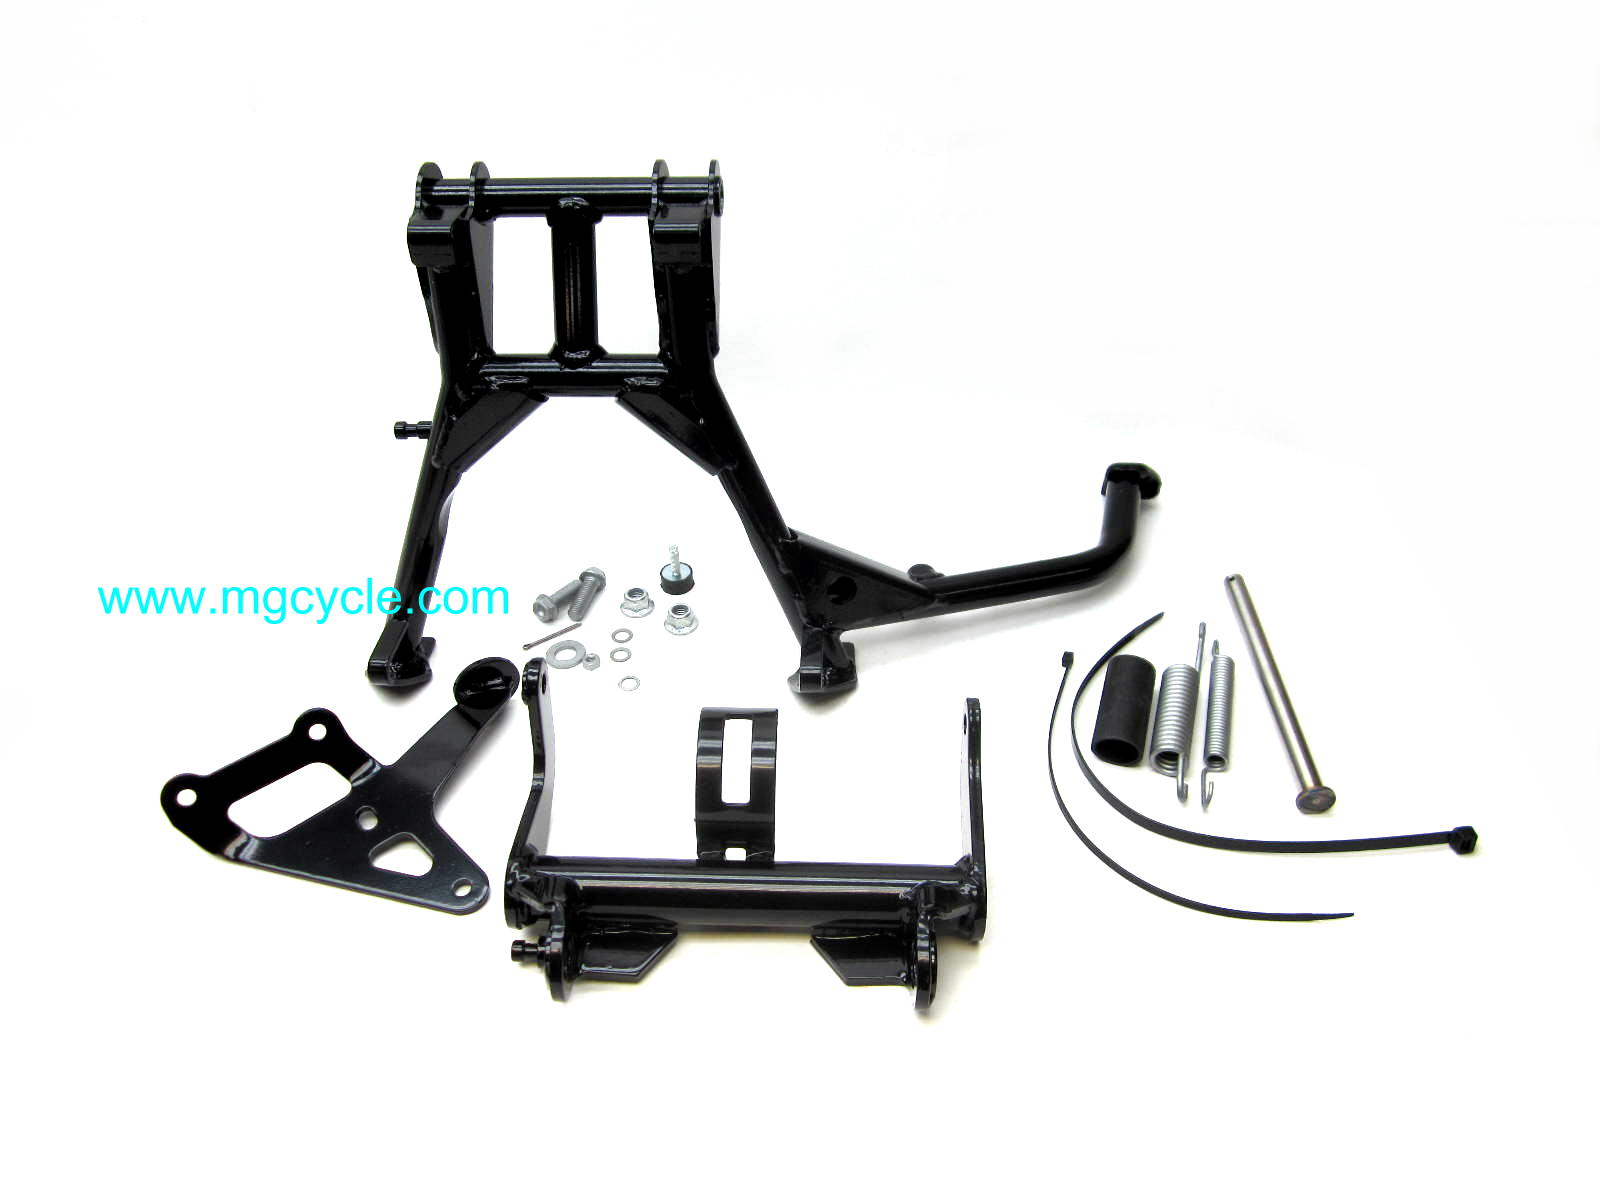 stands : MG Cycle, Moto Guzzi Parts and Accessories